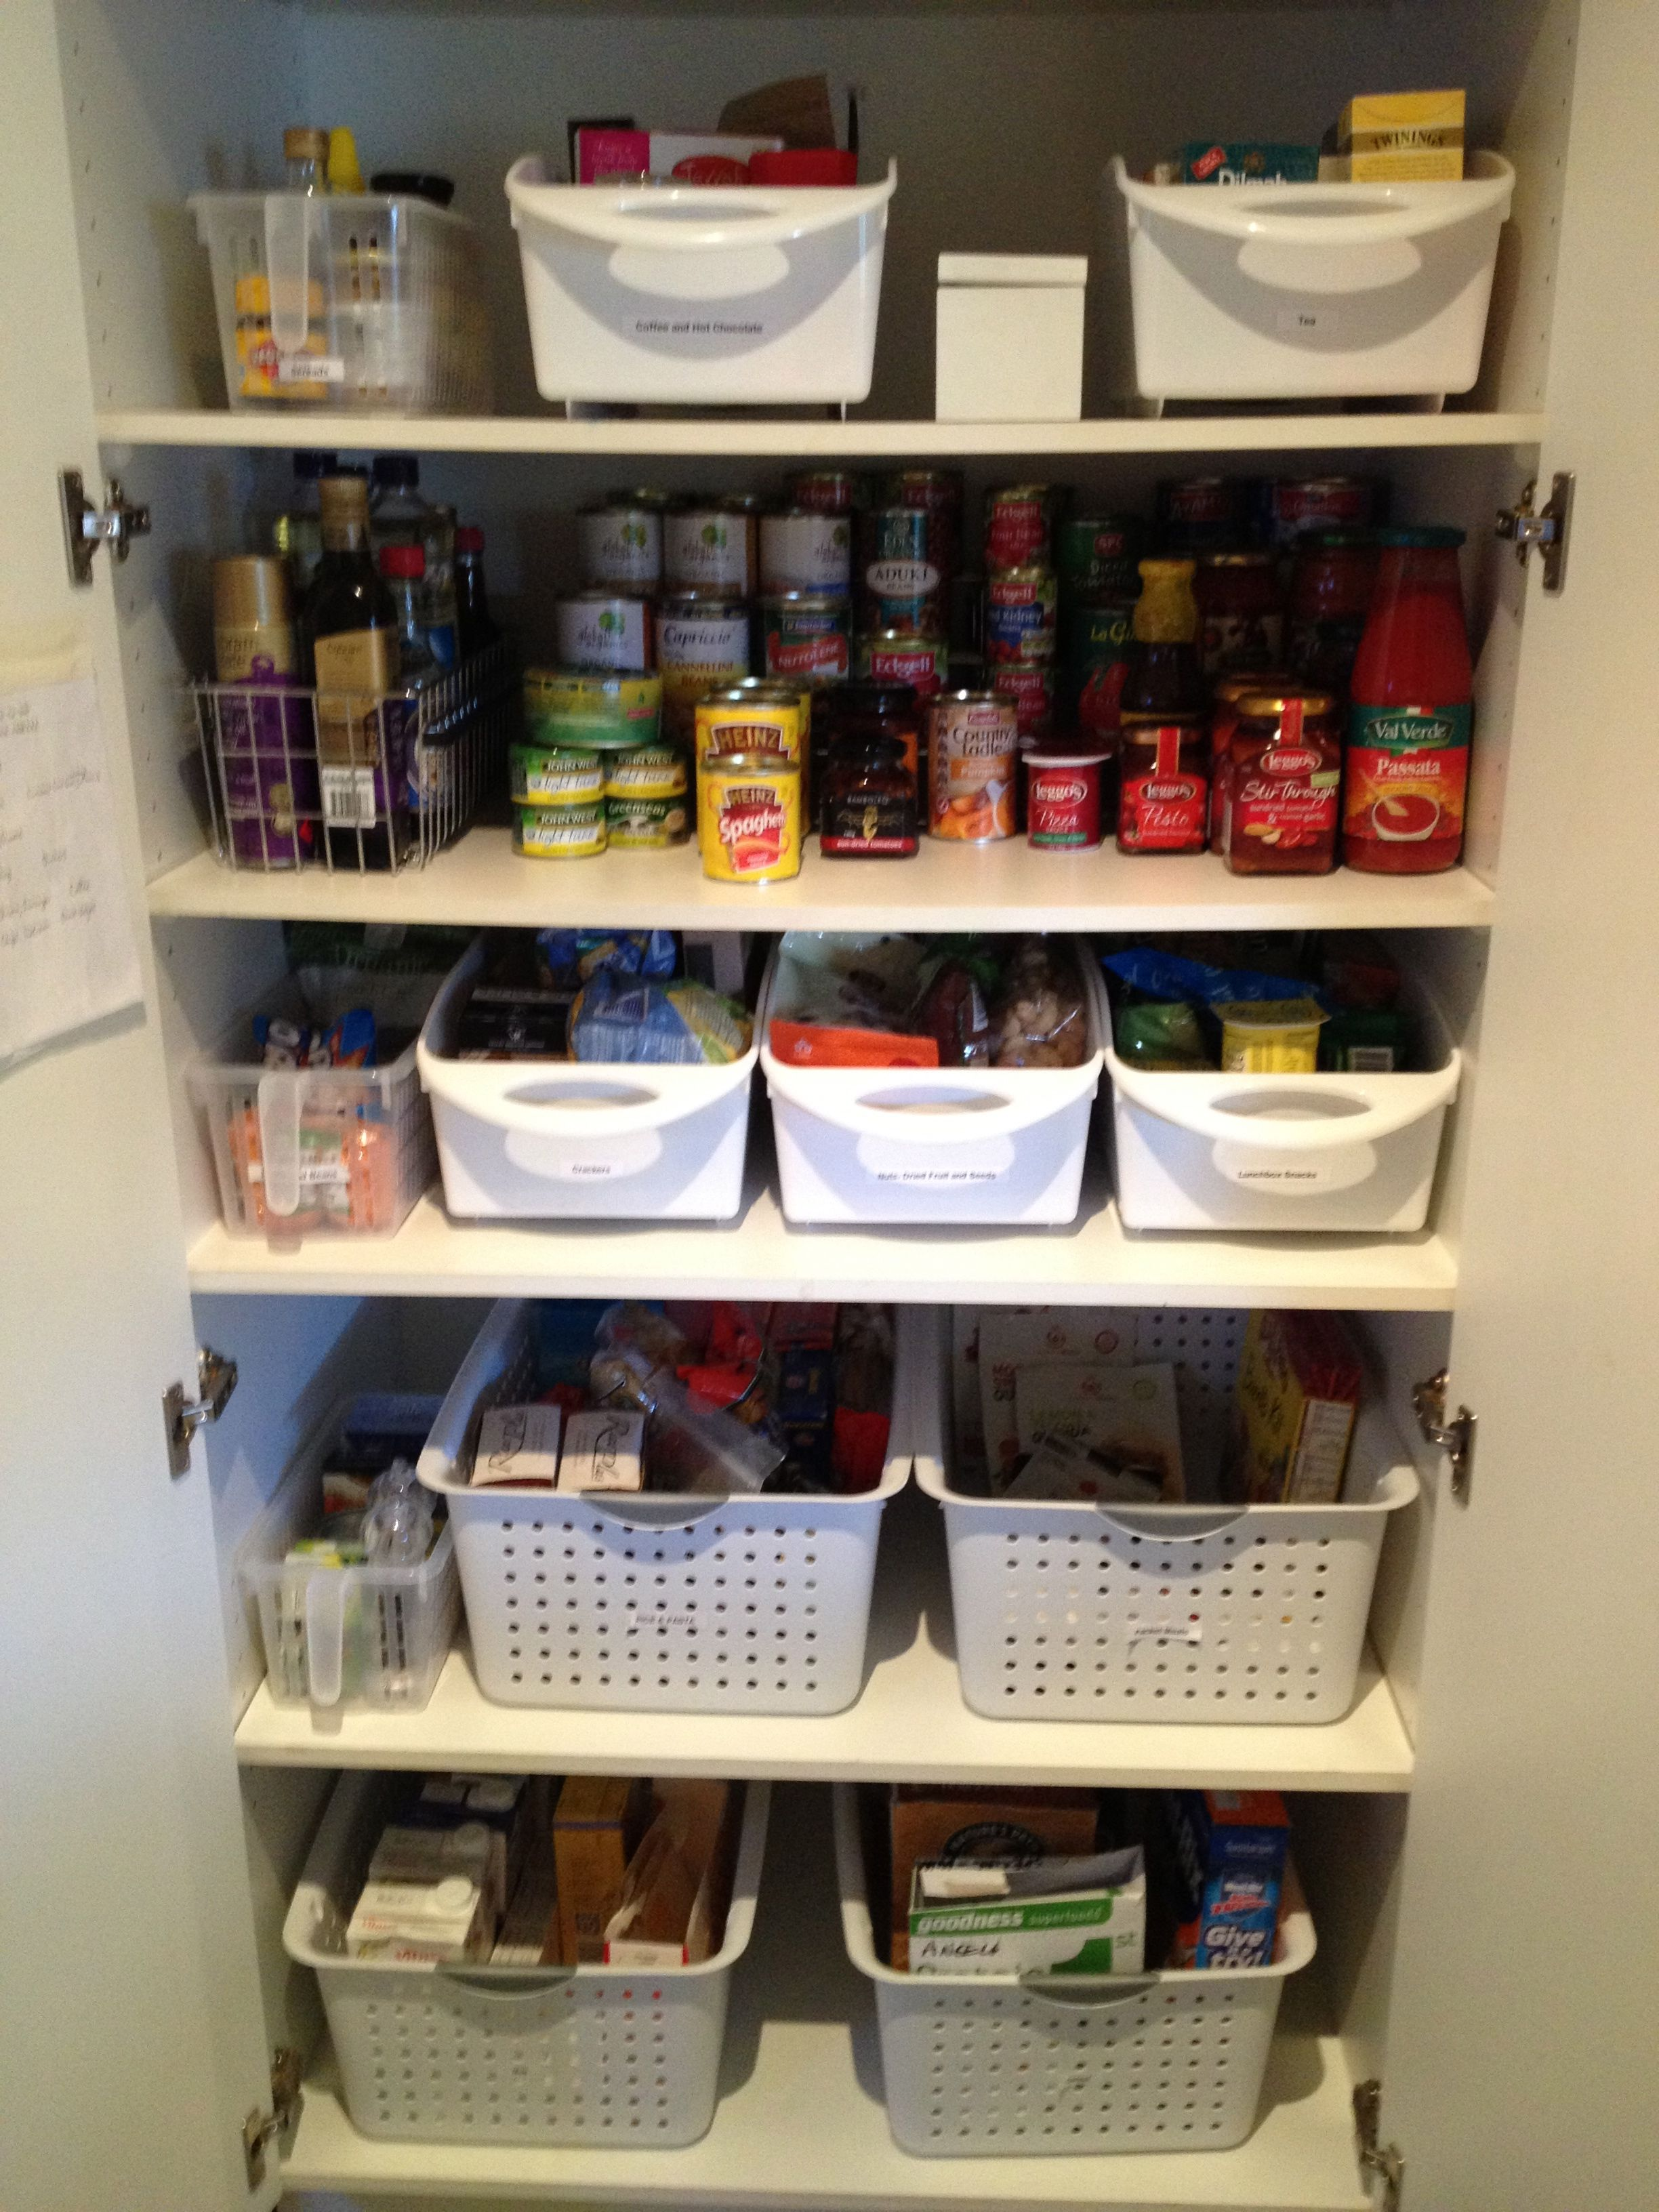 Organising a kitchen pantry with deep shelves kitchen for Organization ideas for kitchen pantry